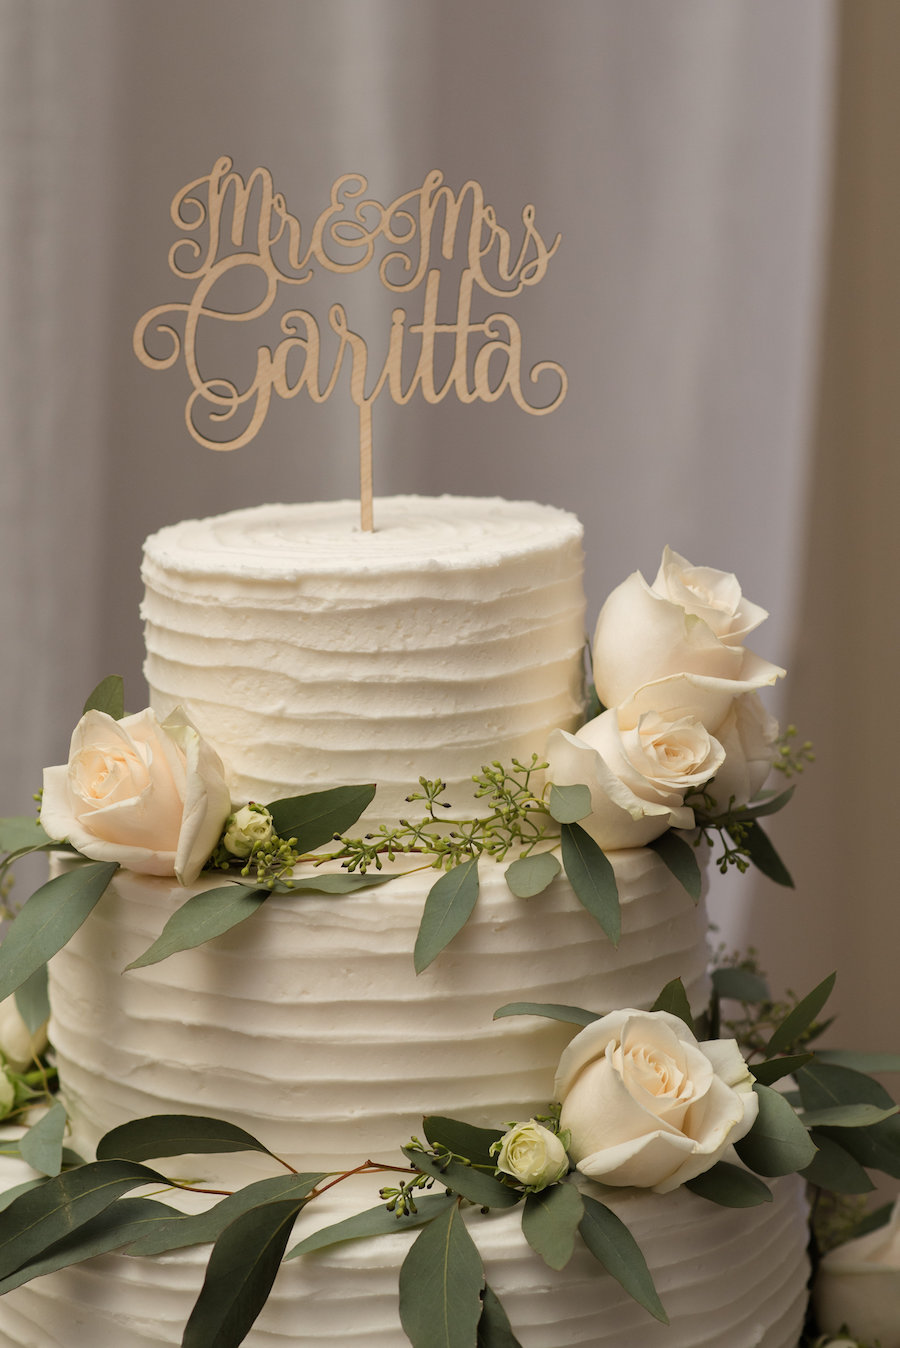 Round White Three Tier Wedding Cake with Cream Roses and Greenery and Stylish Mr and Mrs Gold Cake Topper